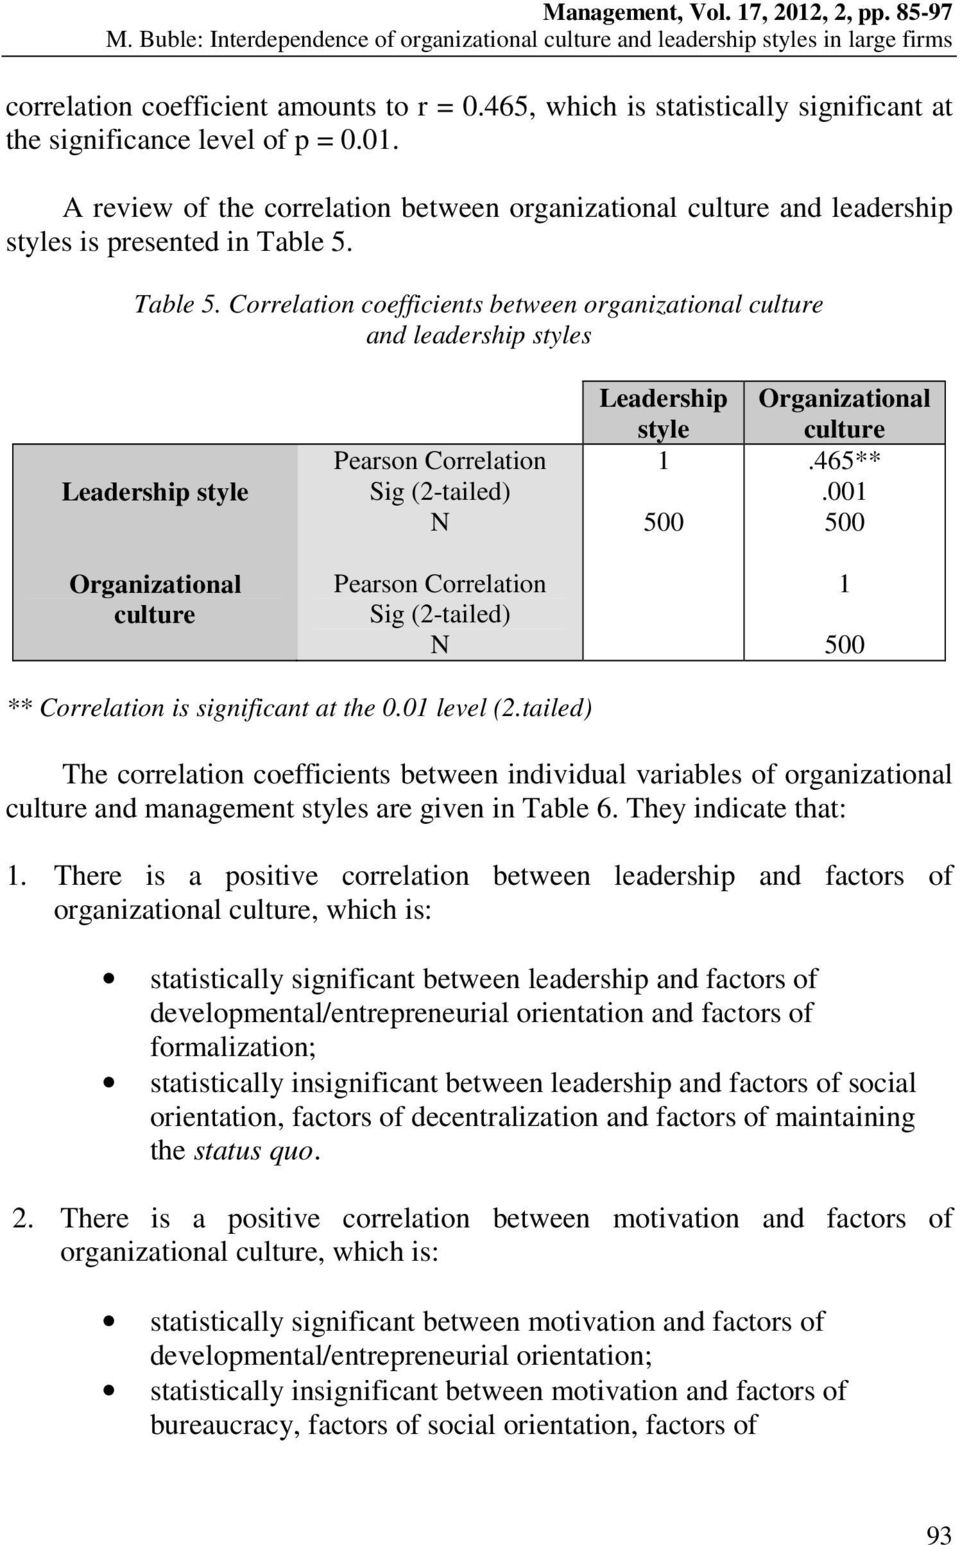 Table 5. Correlation coefficients between organizational culture and leadership styles Leadership style Pearson Correlation Sig (2-tailed) Leadership style 1 Organizational culture.465**.